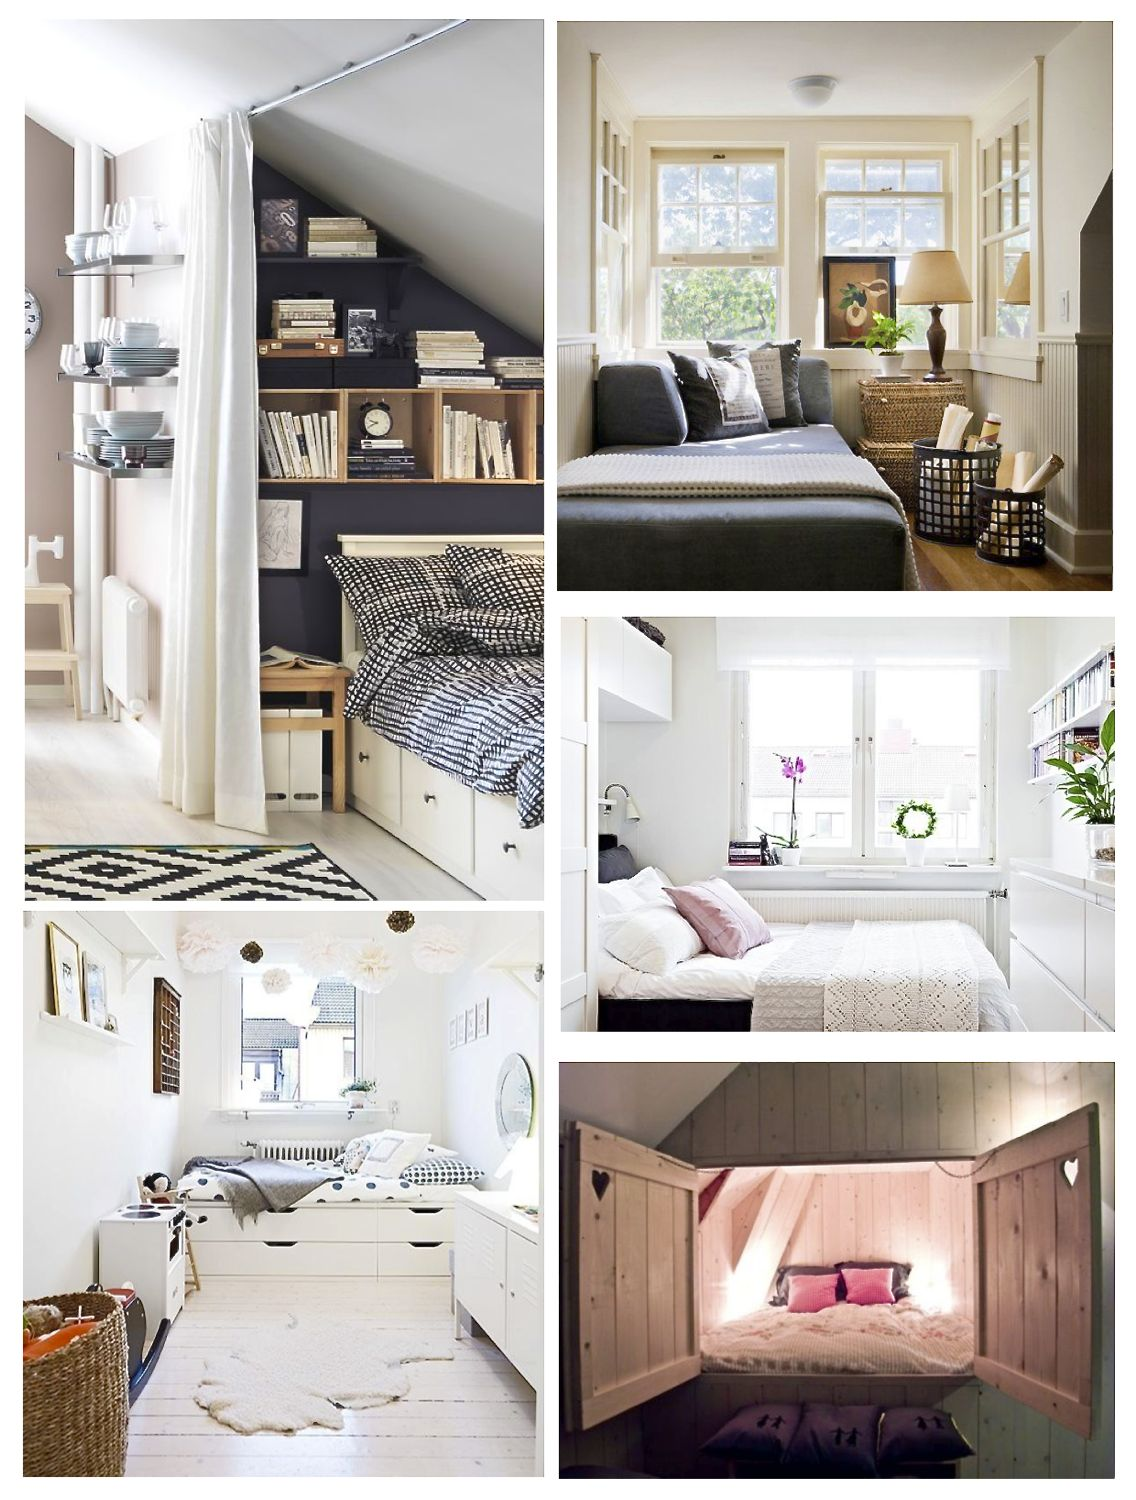 13 Small Bedroom Ideas - Style Barista on Girls Bedroom Ideas For Very Small Rooms  id=41365